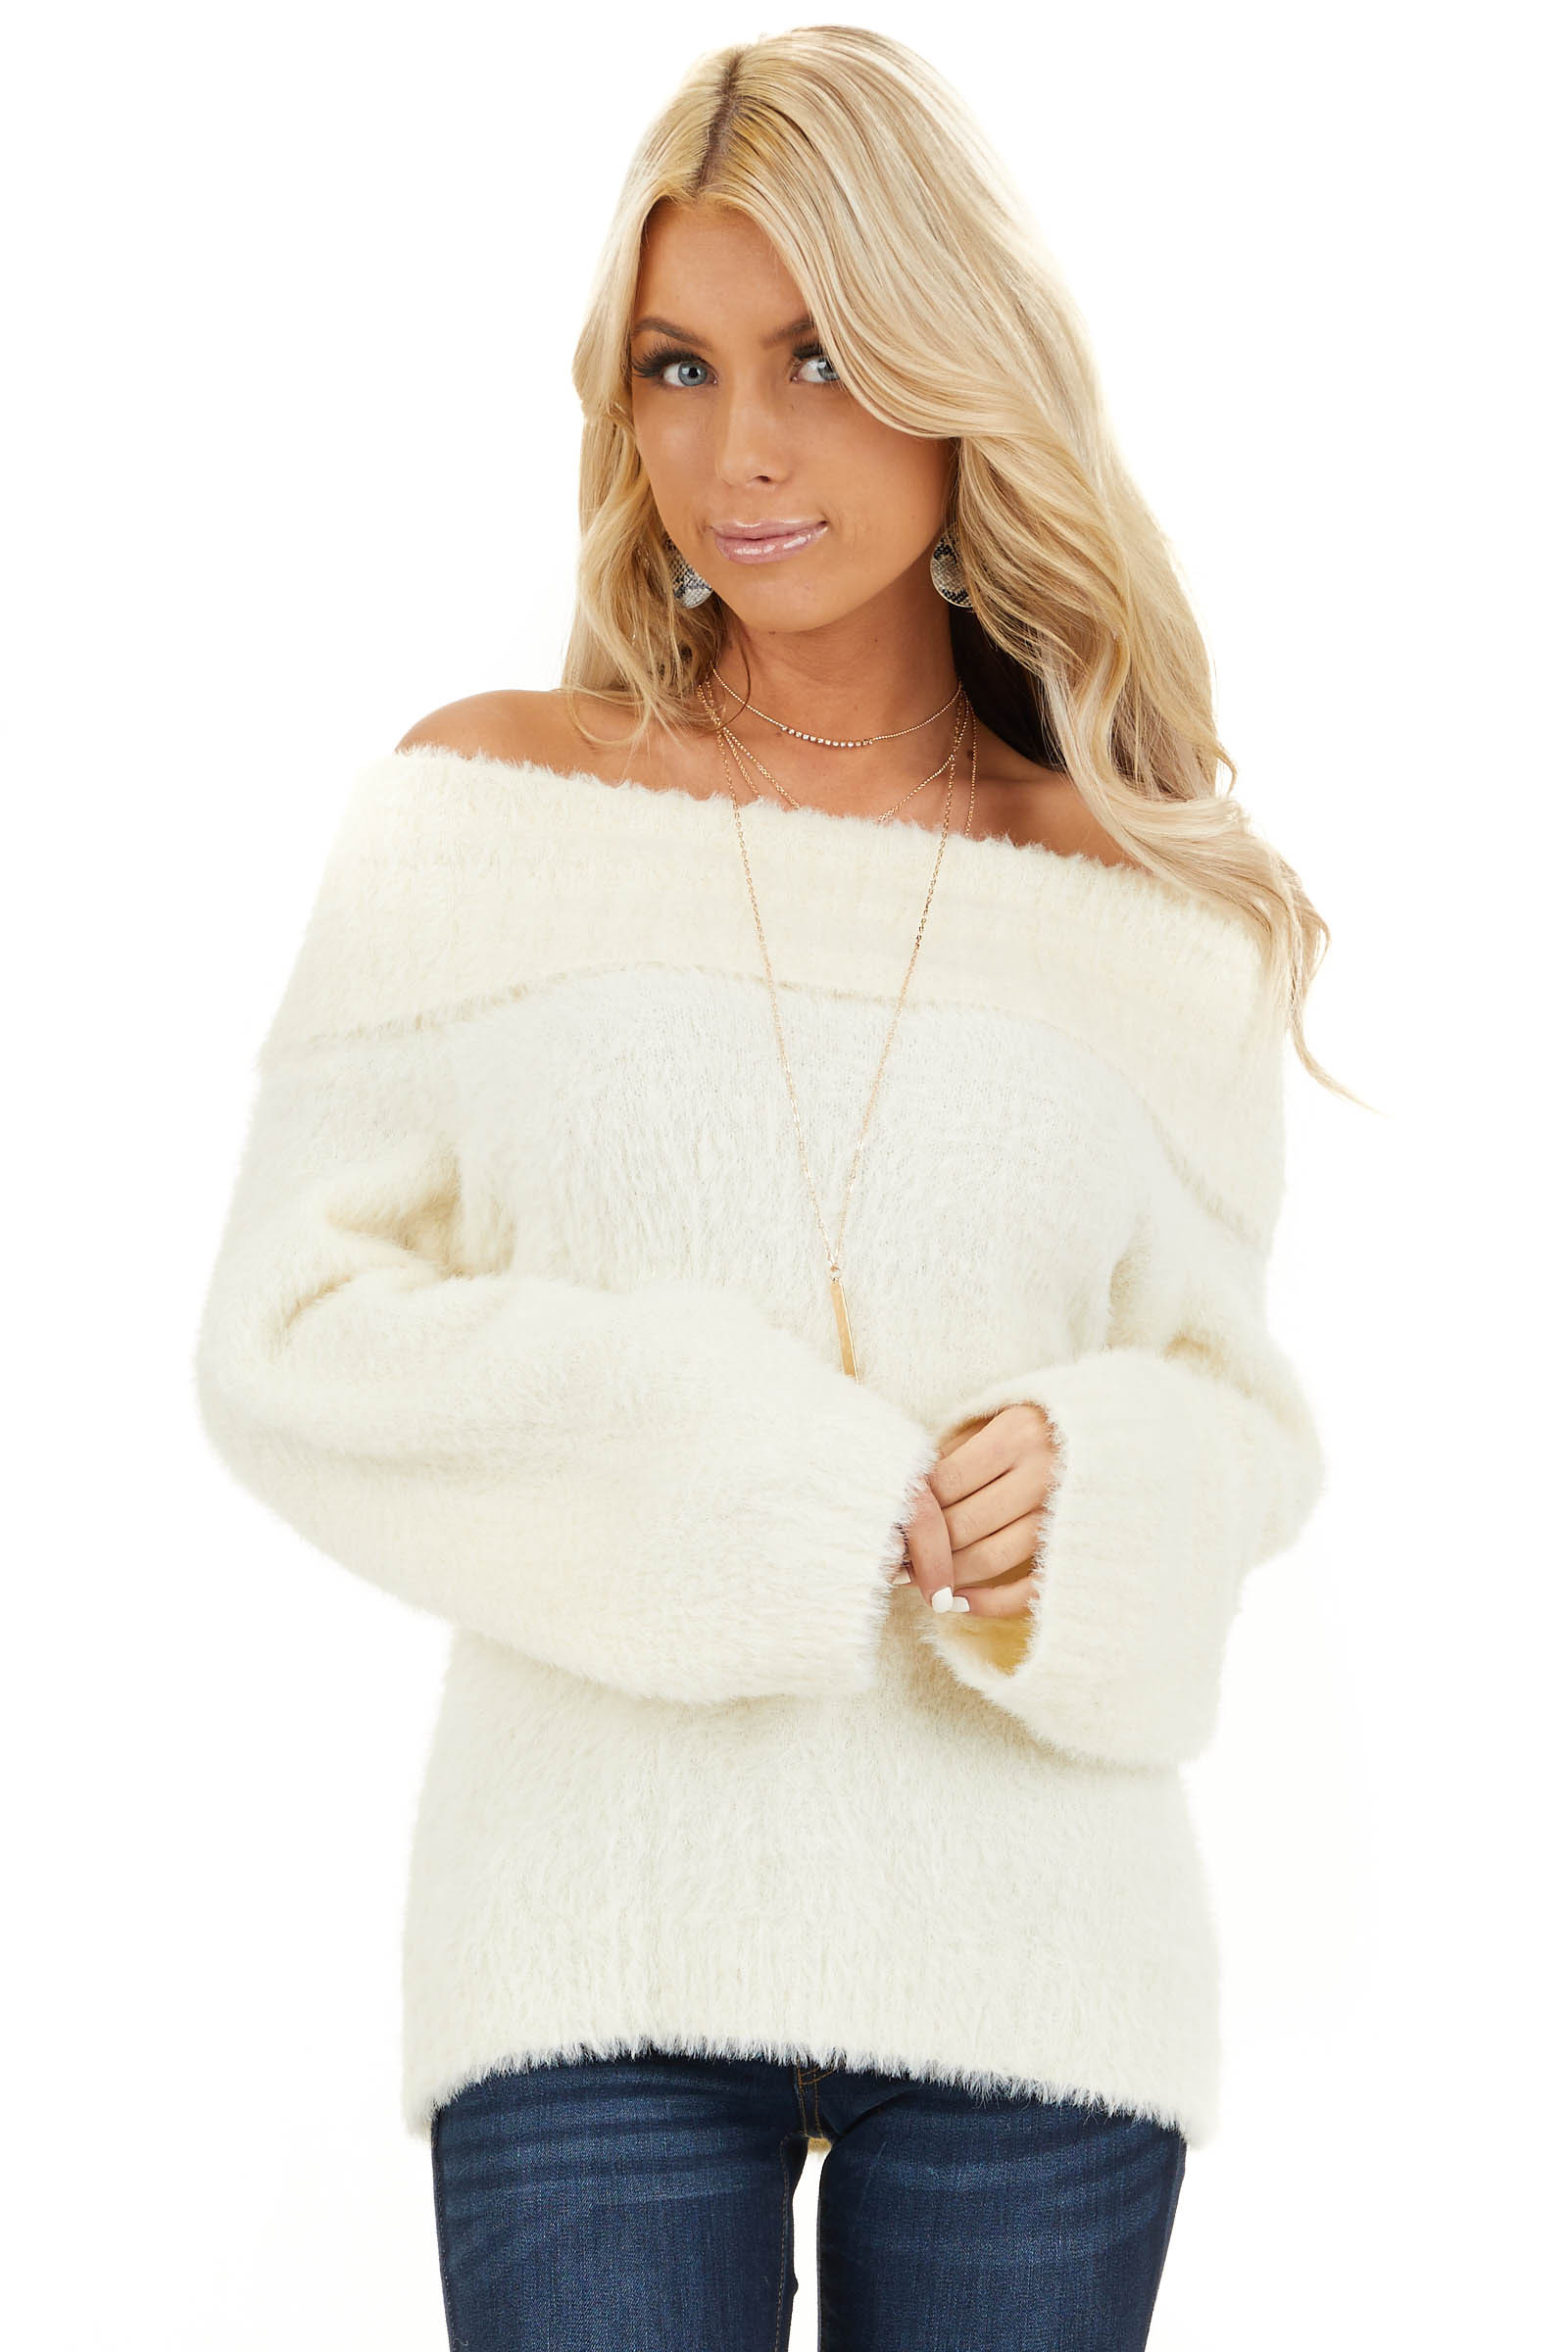 Cream Super Soft Fuzzy Off the Shoulder Long Sleeve Top front close up